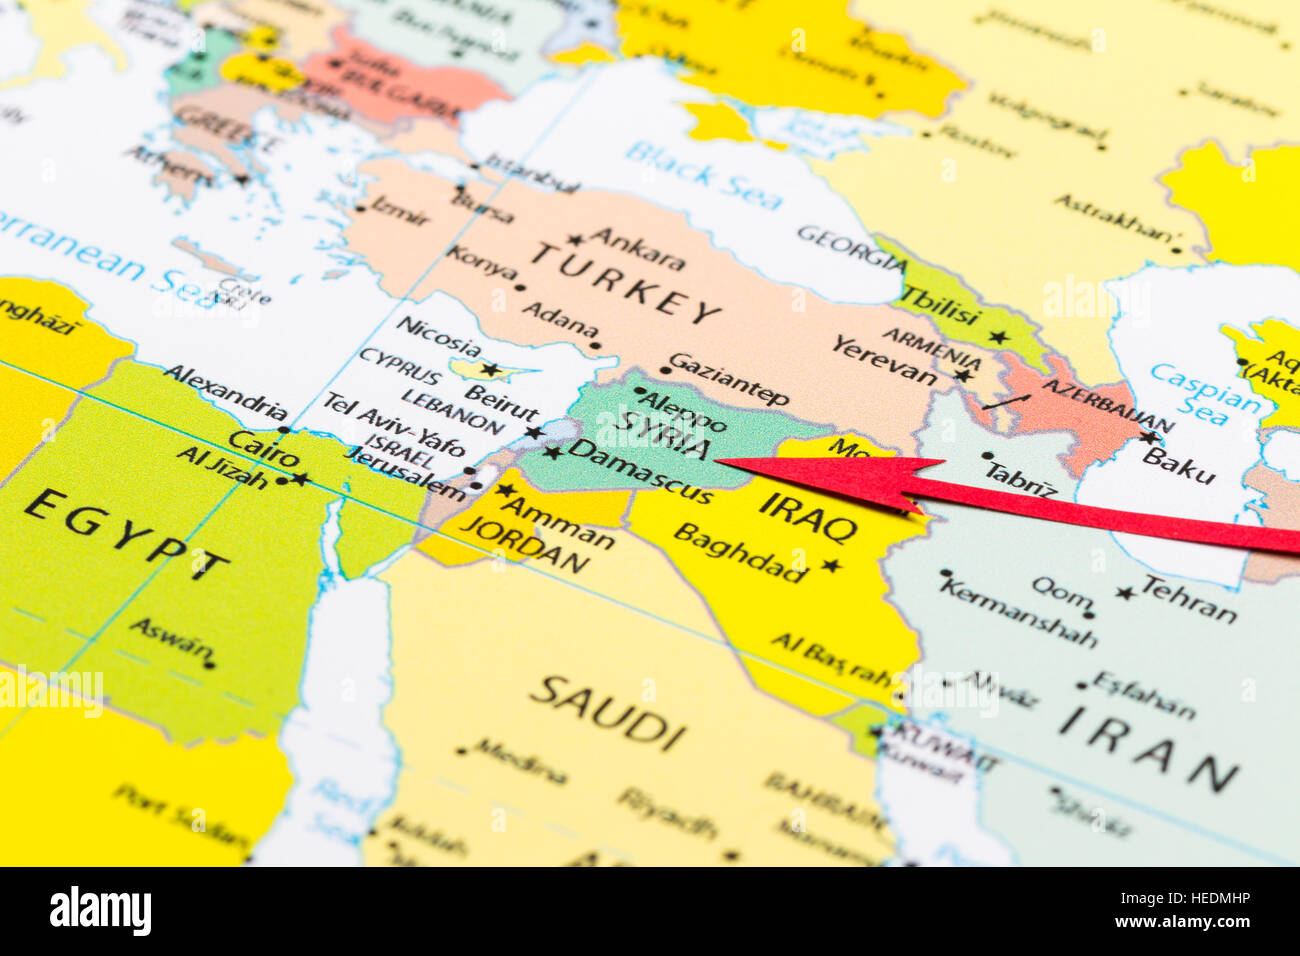 Red Arrow Pointing Syria On The Map Of Asia Continent Stock Photo - Is syria in asia